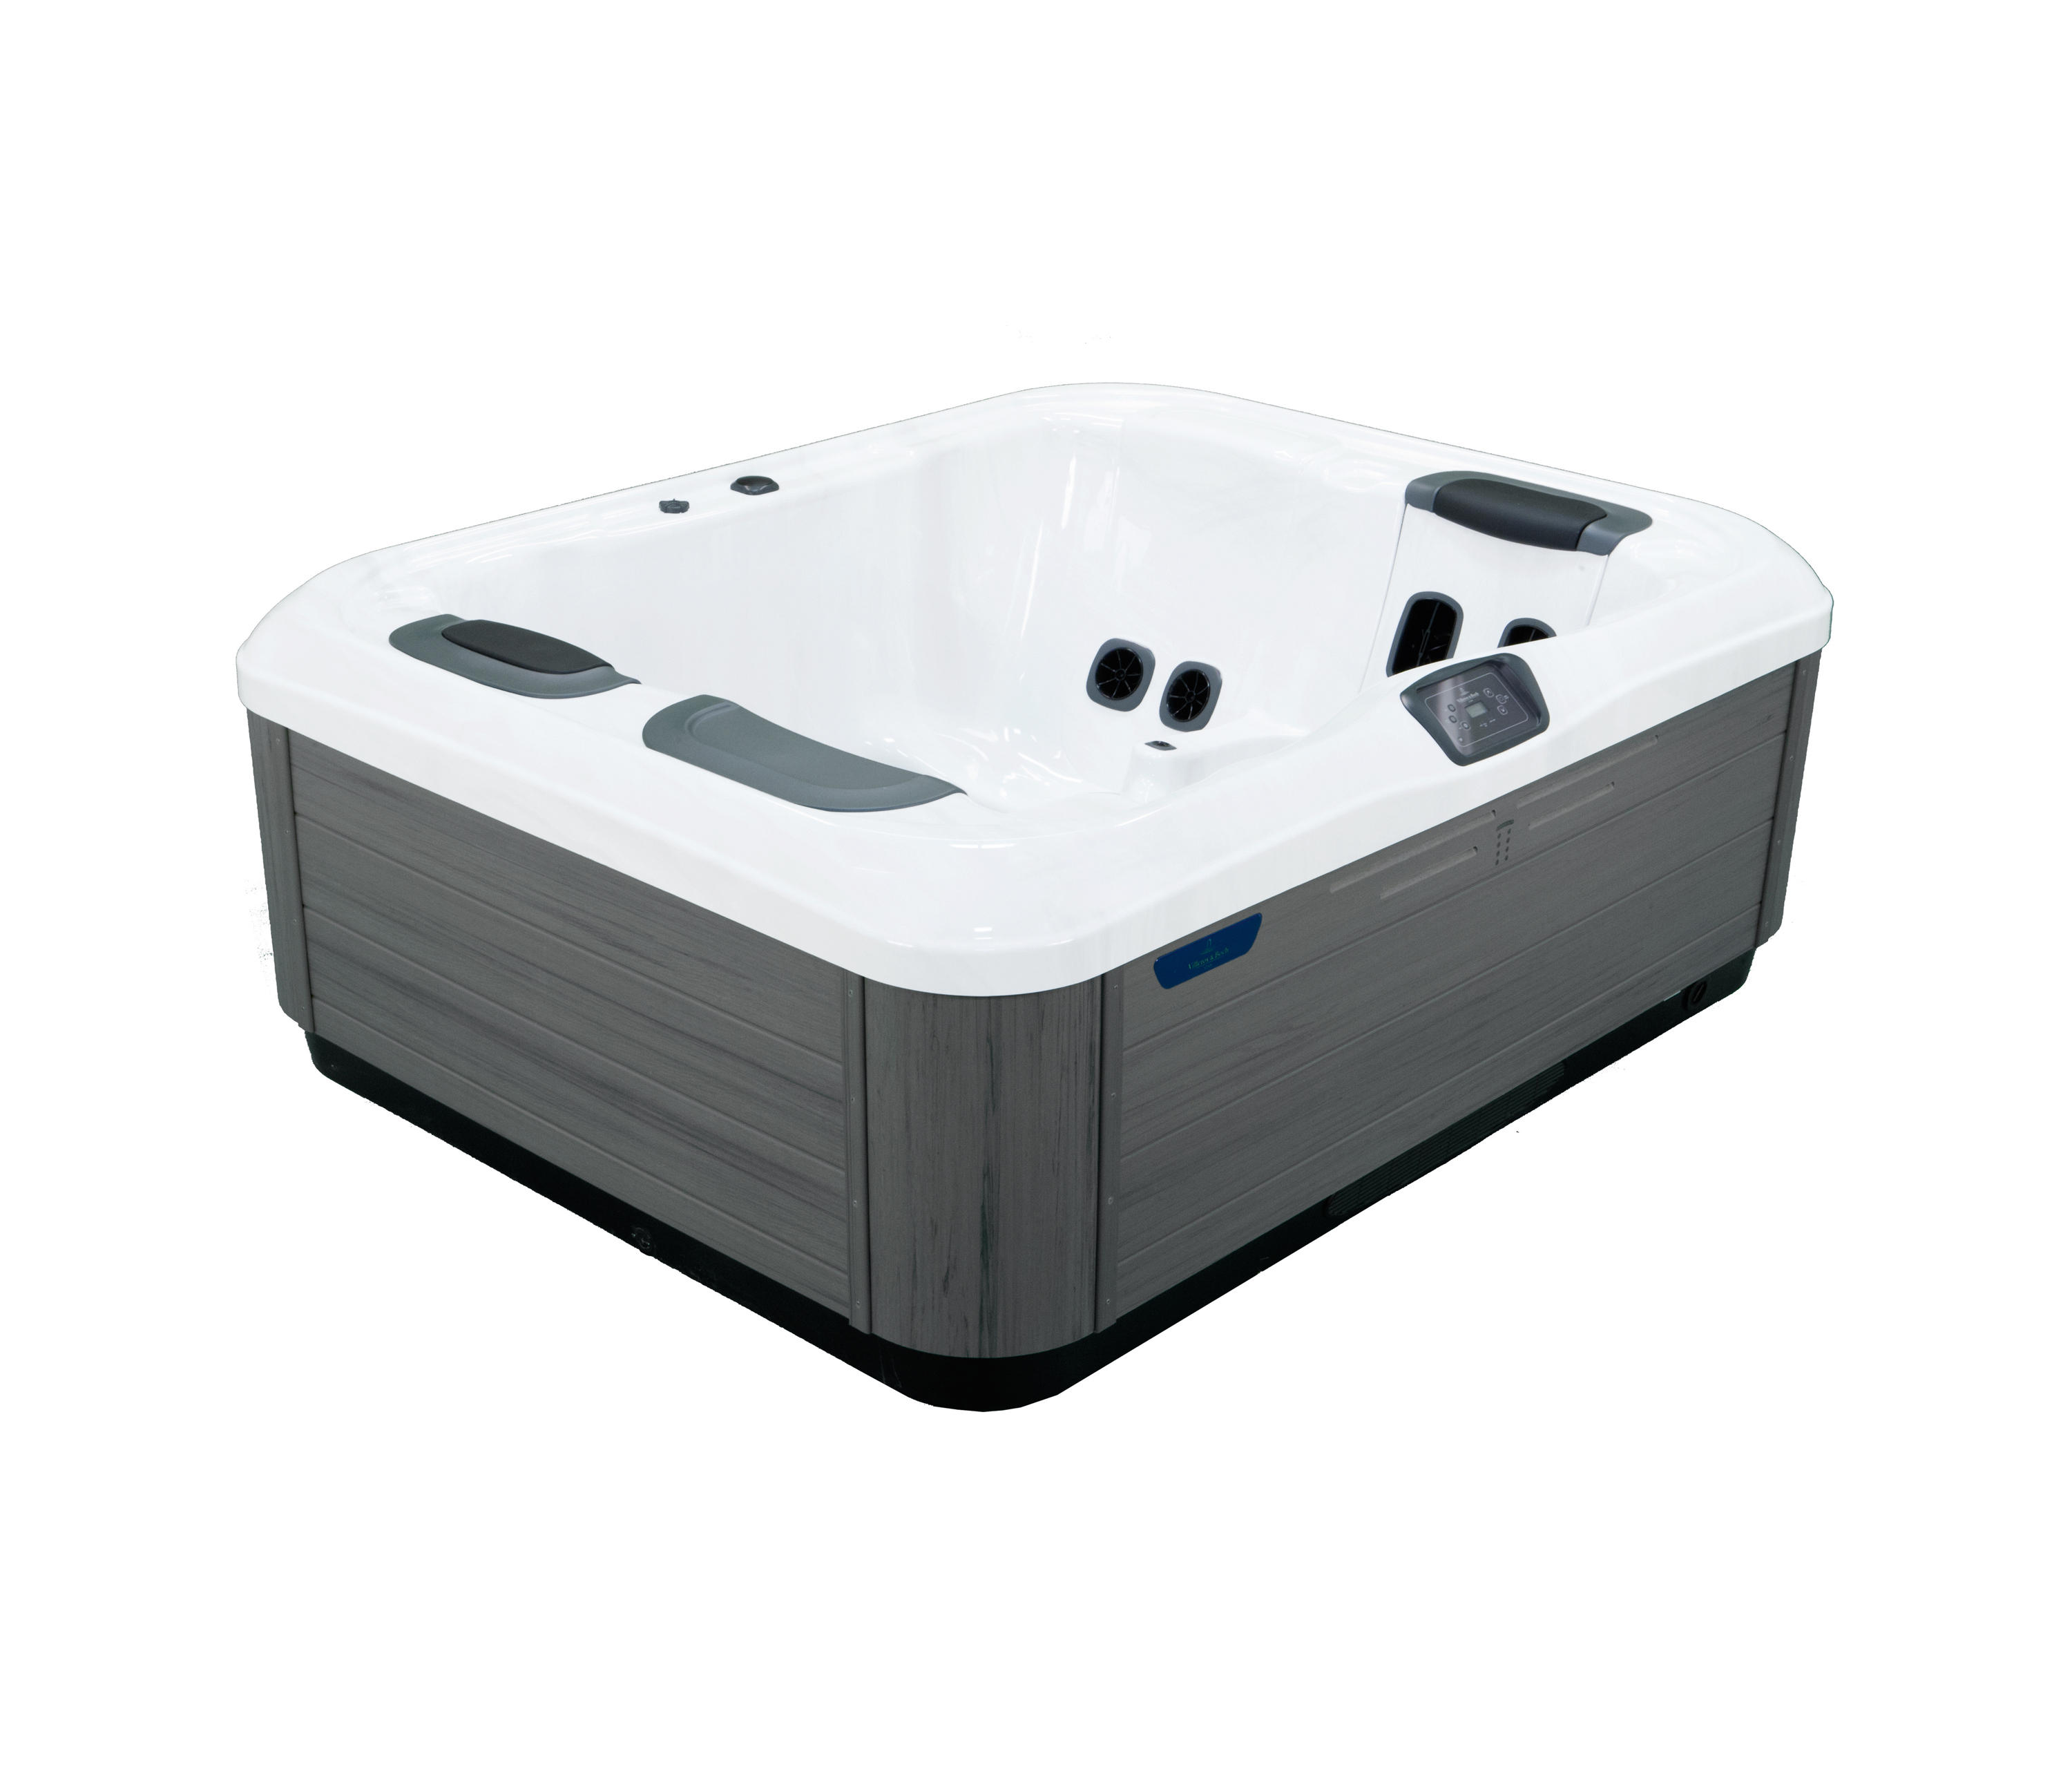 COMFORT LINE R5L - Hydromassage baths from Villeroy & Boch | Architonic